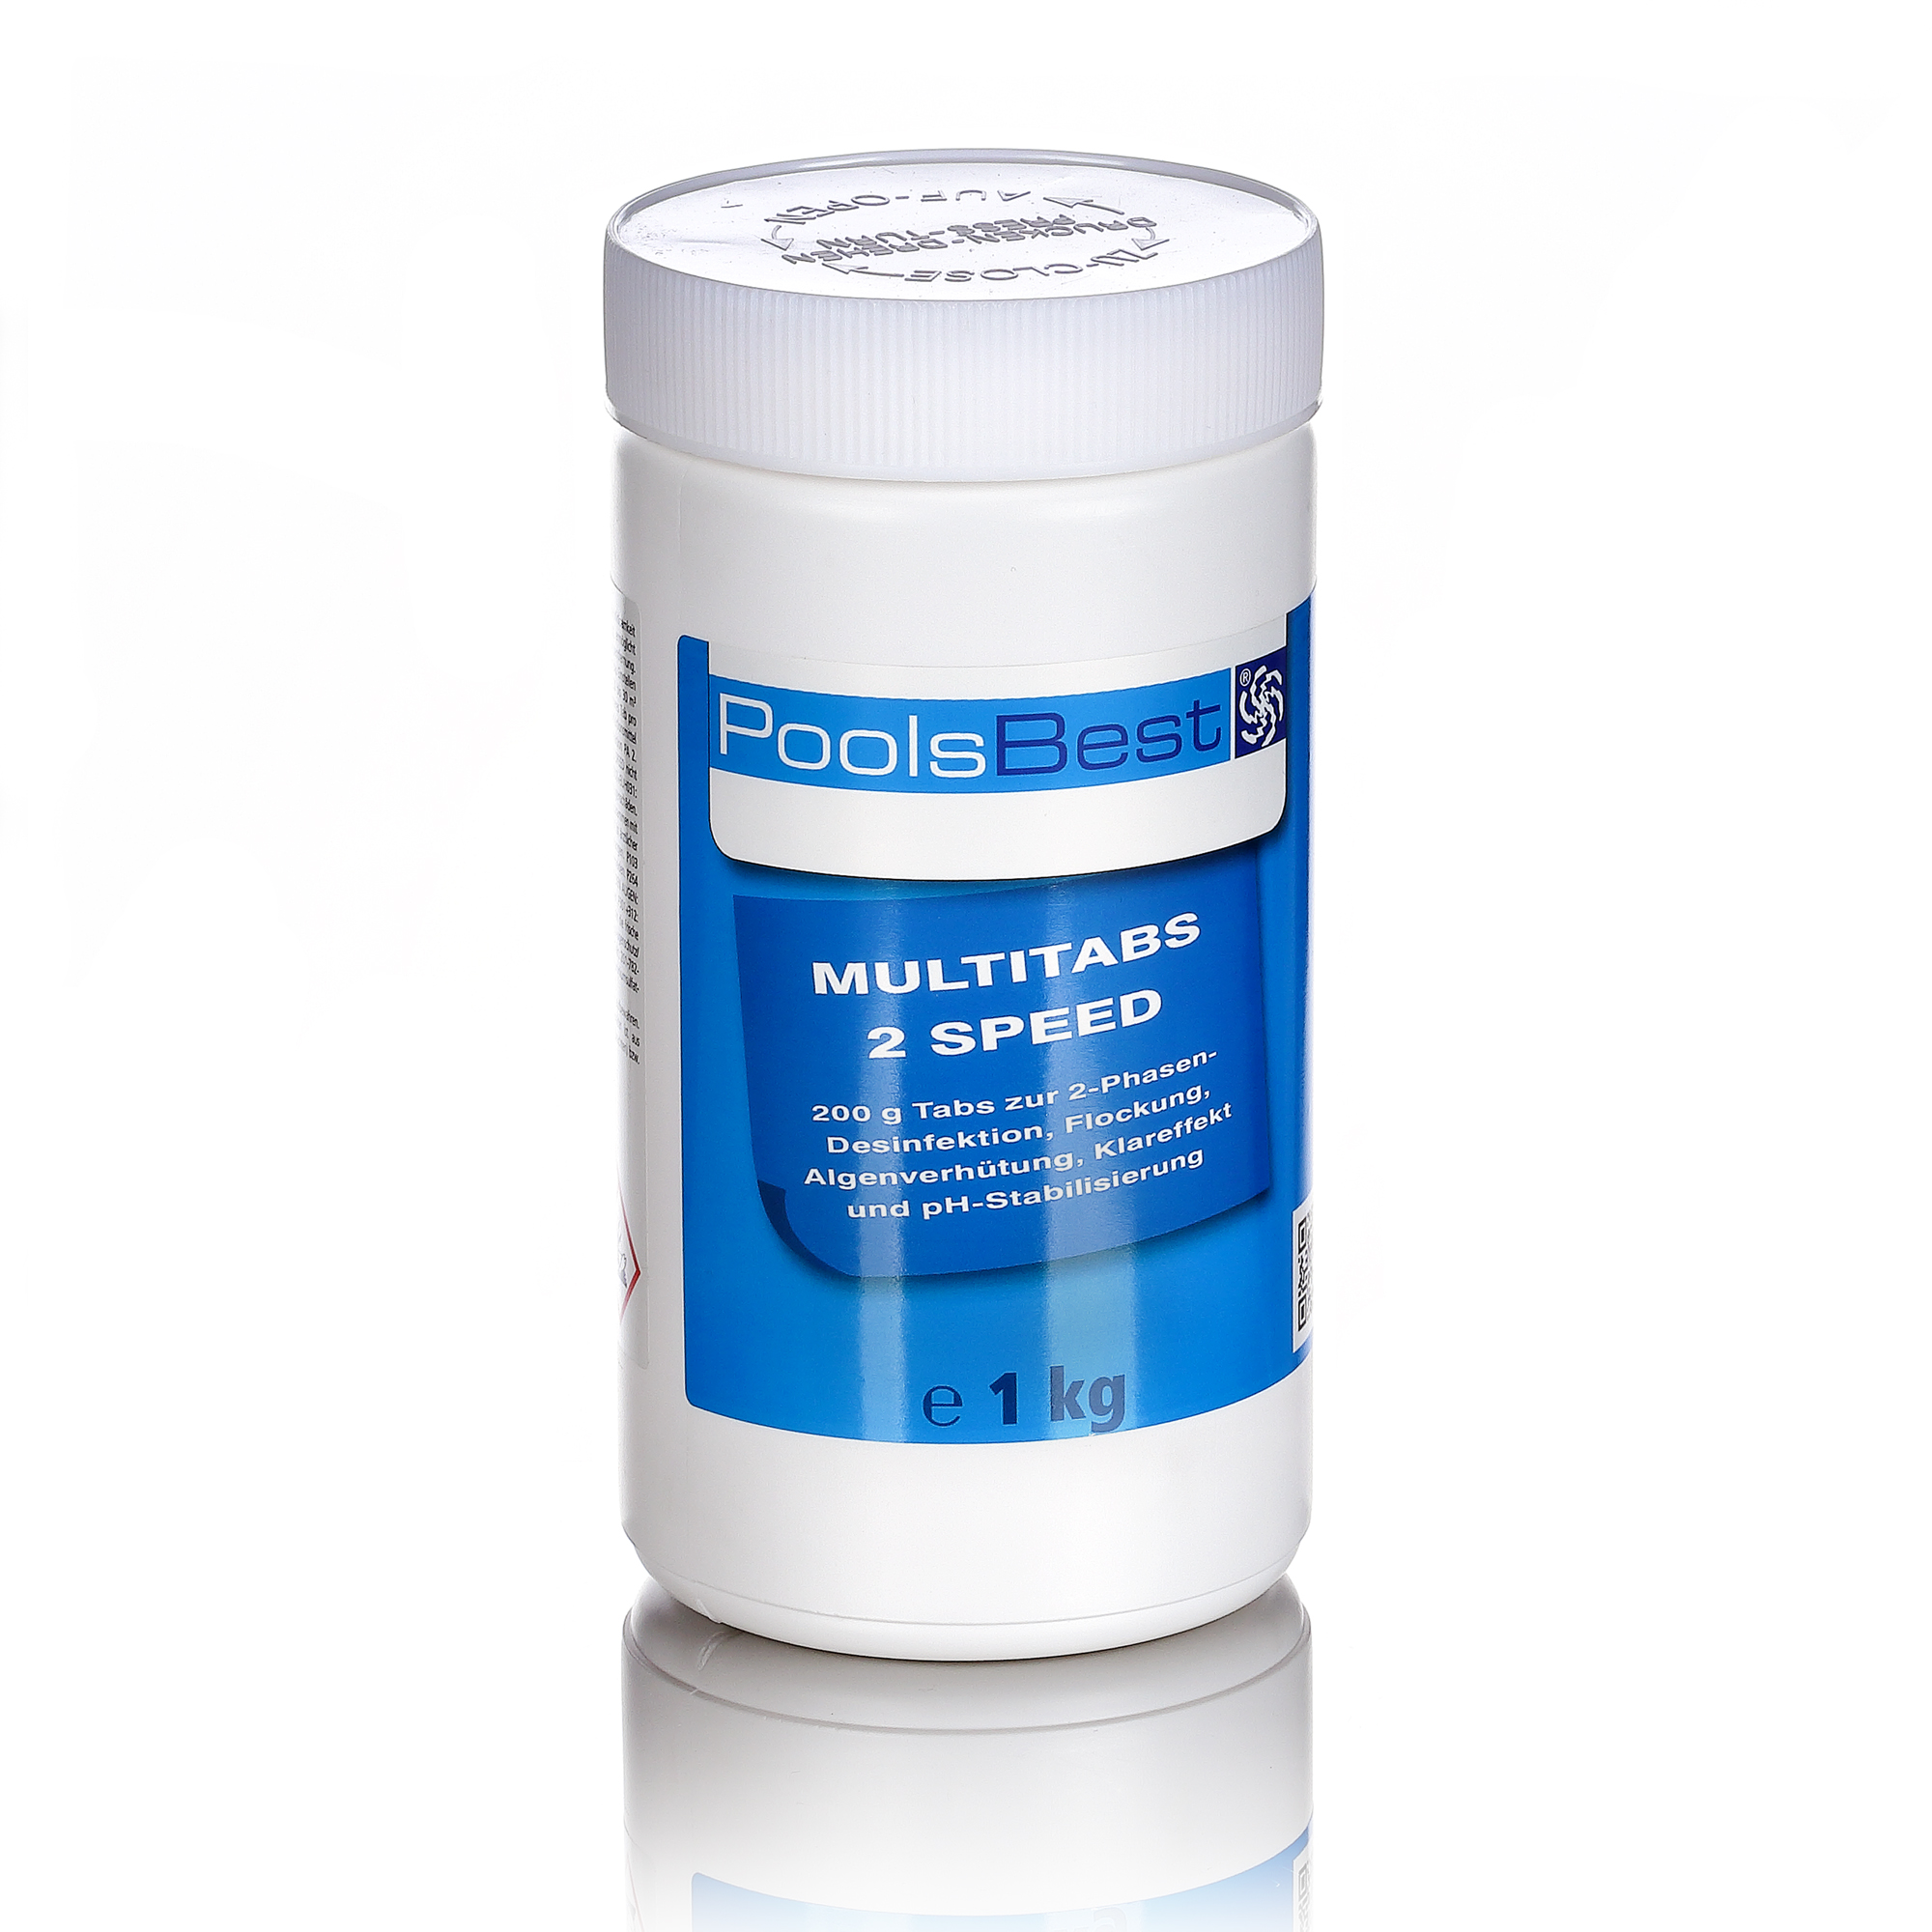 Chlortabletten Pool 5 In 1 1 Kg Poolsbest Multi 2 Speed 6 In 1 Tabs Schnell